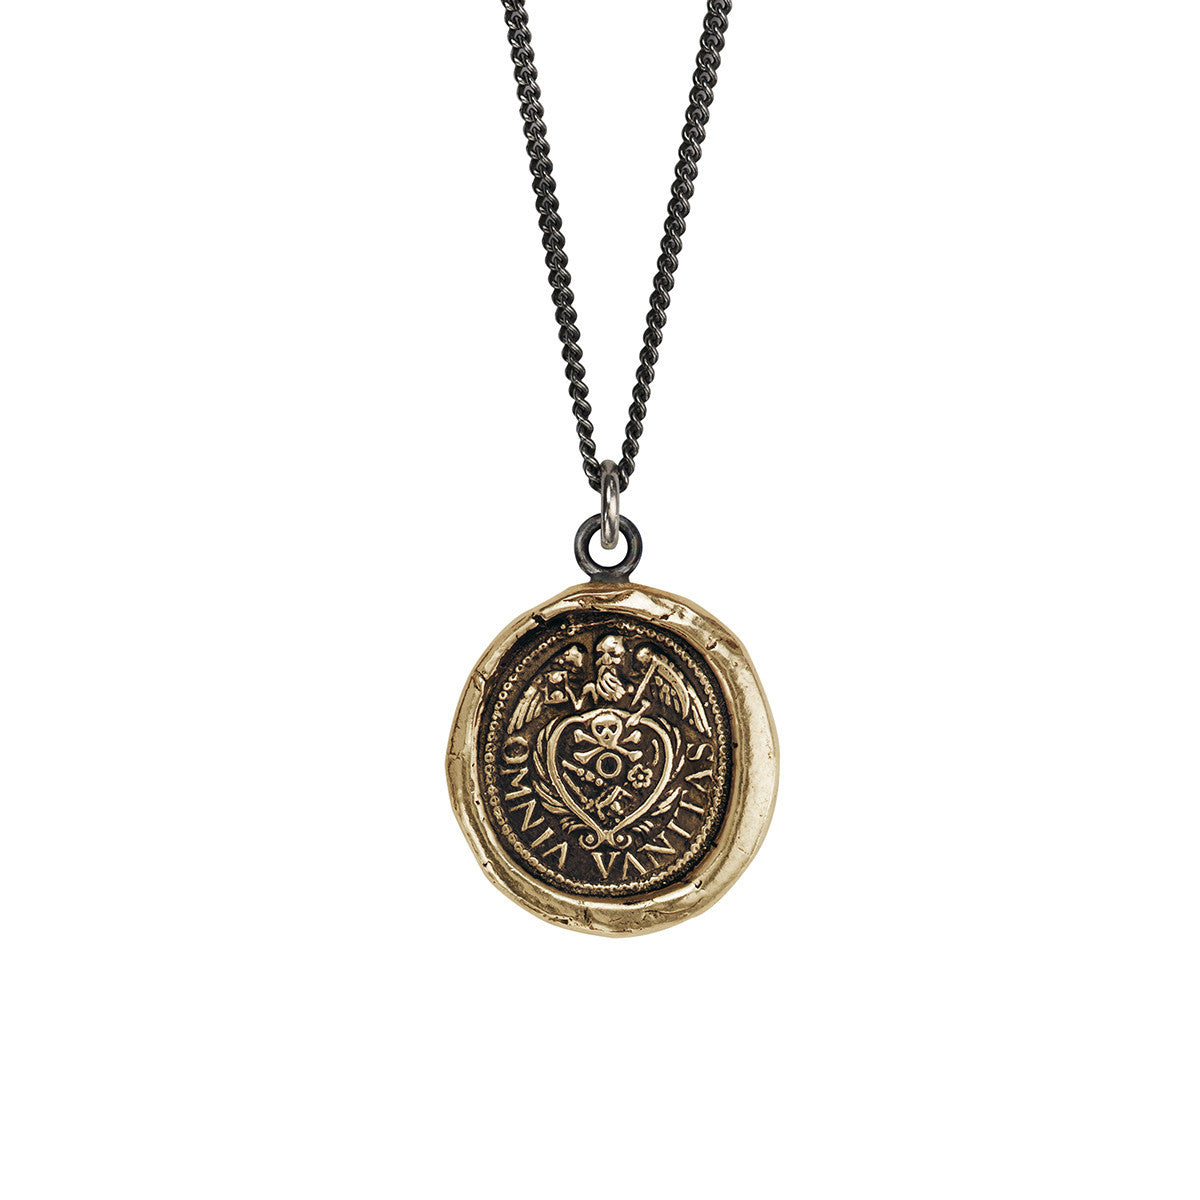 Vanity Talisman Necklace